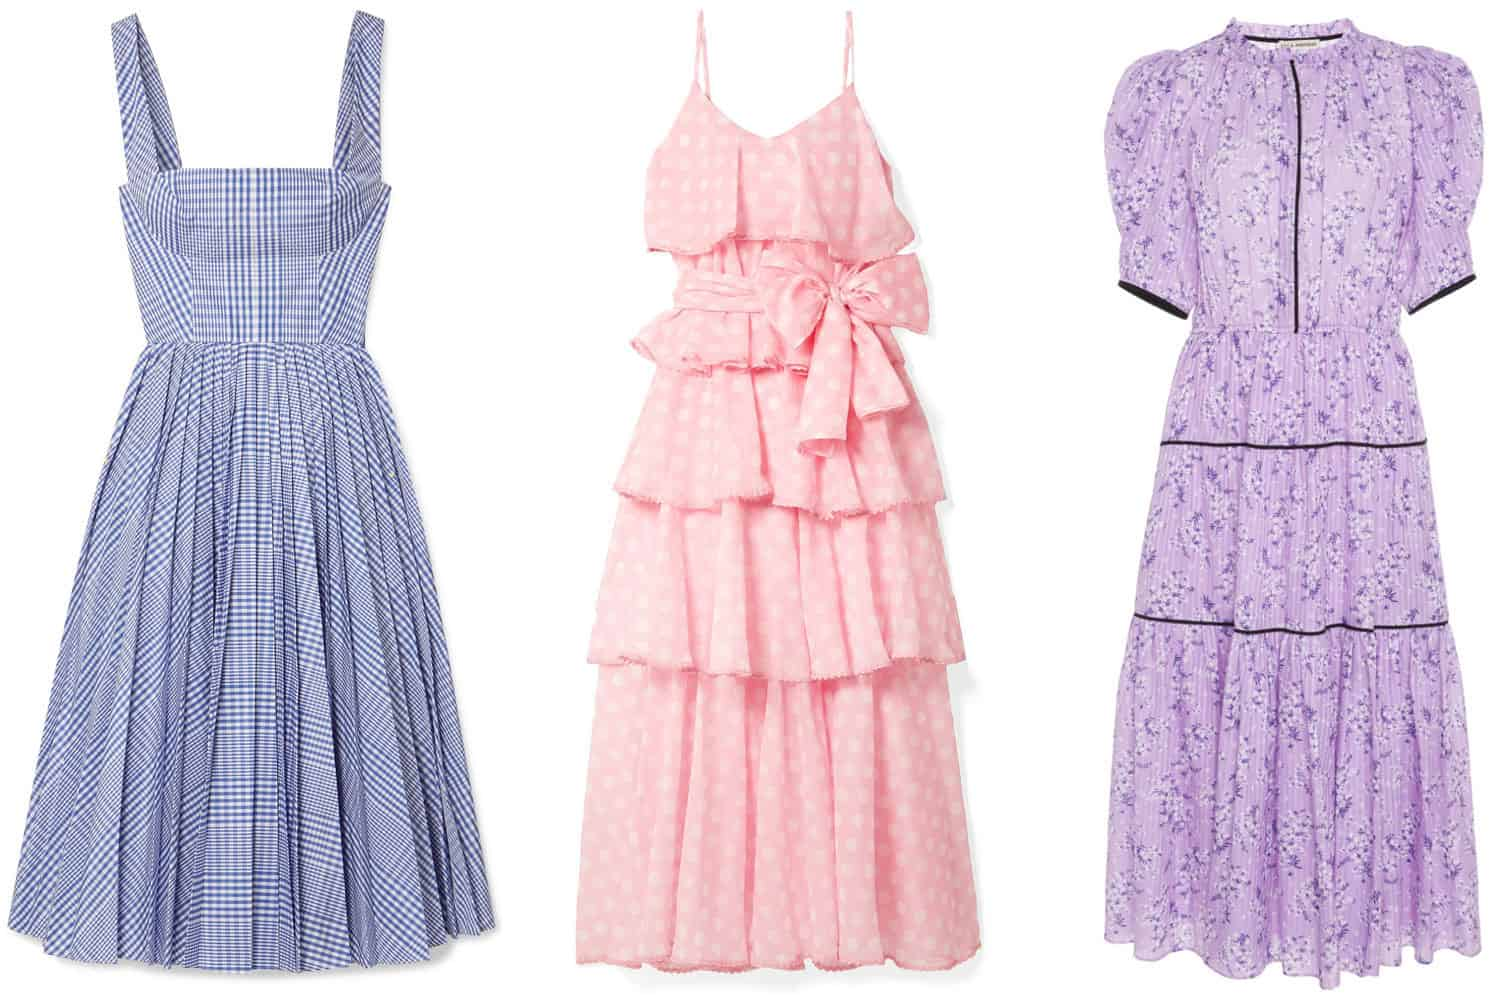 15 Chic And Easy Dresses Perfect For Summer Weddings Daily Front Row